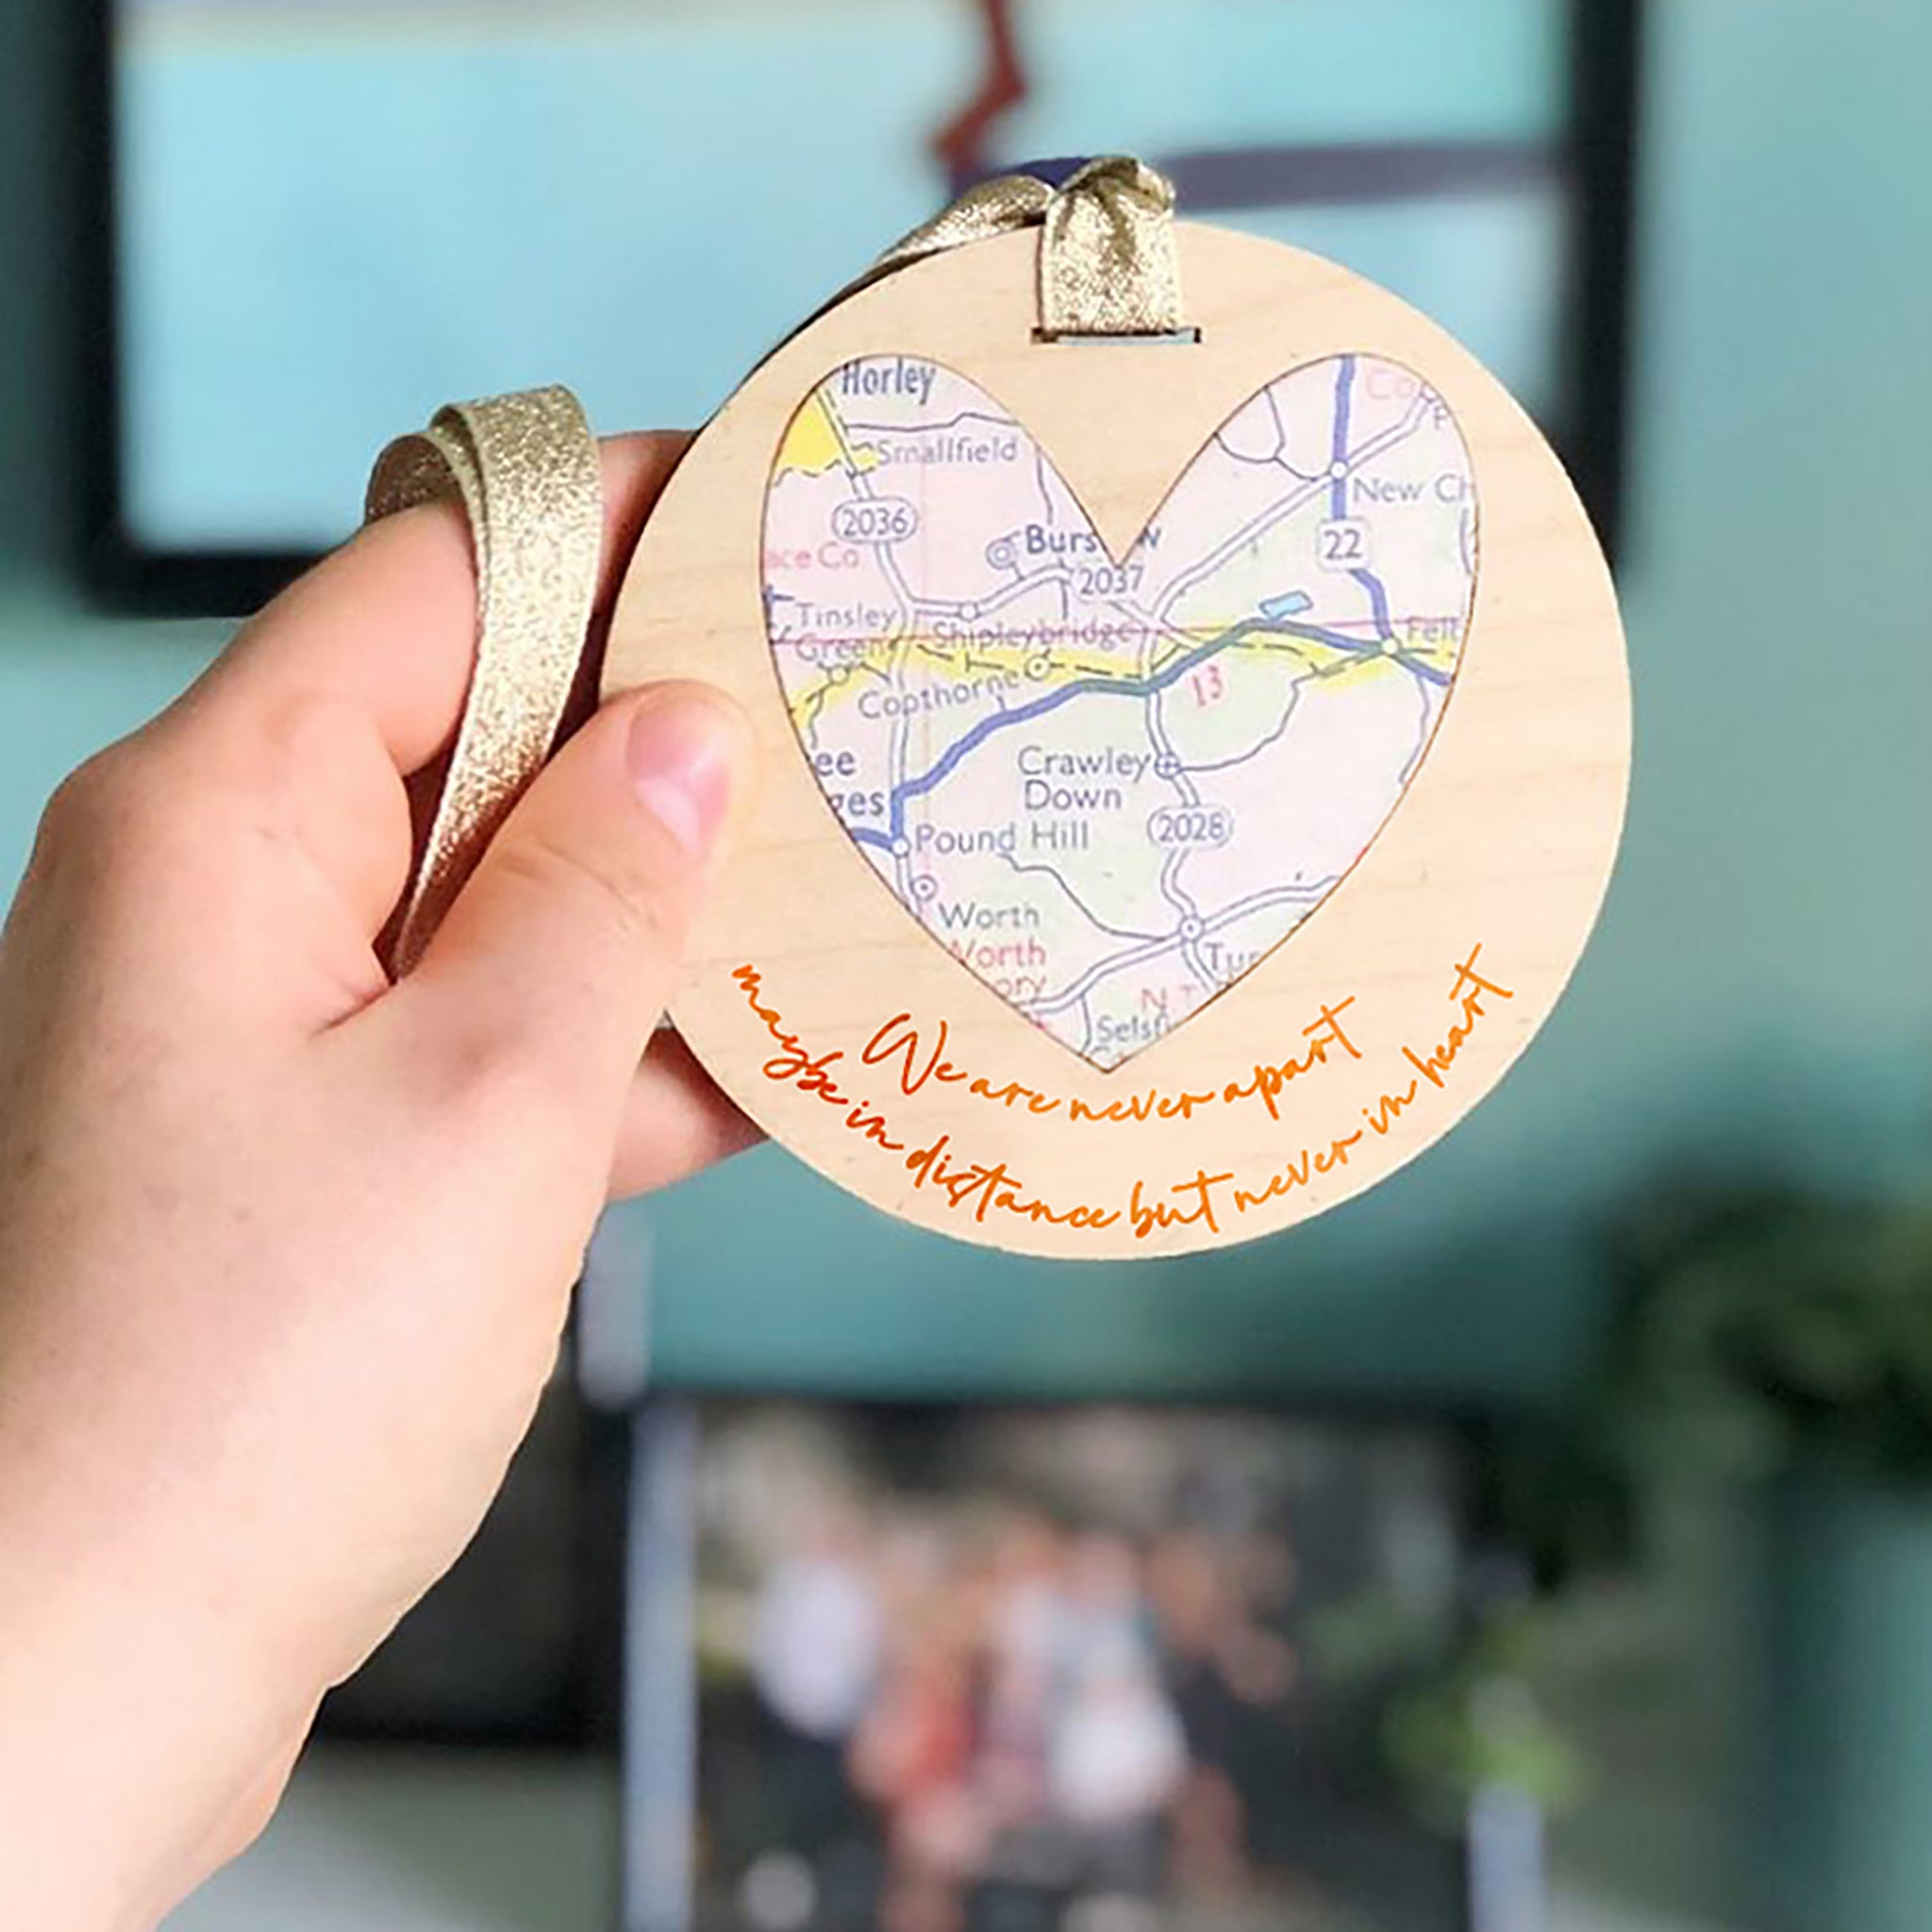 'Never apart, maybe in distance but never in heart' personalised map keepsake